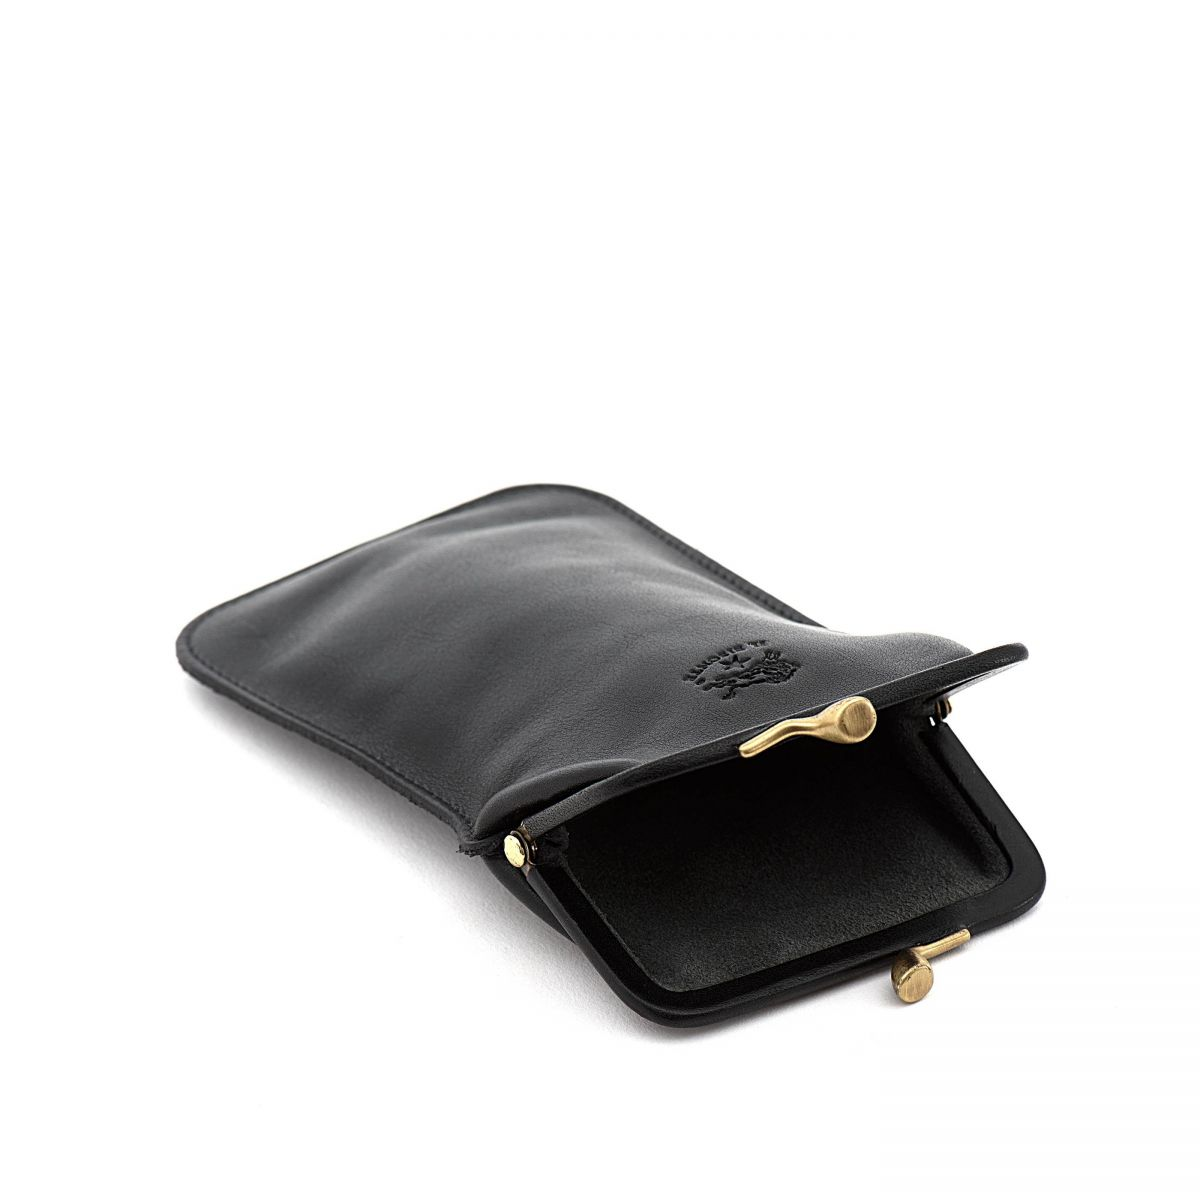 Case in Cowhide Double Leather color Black - SCA025 | Details